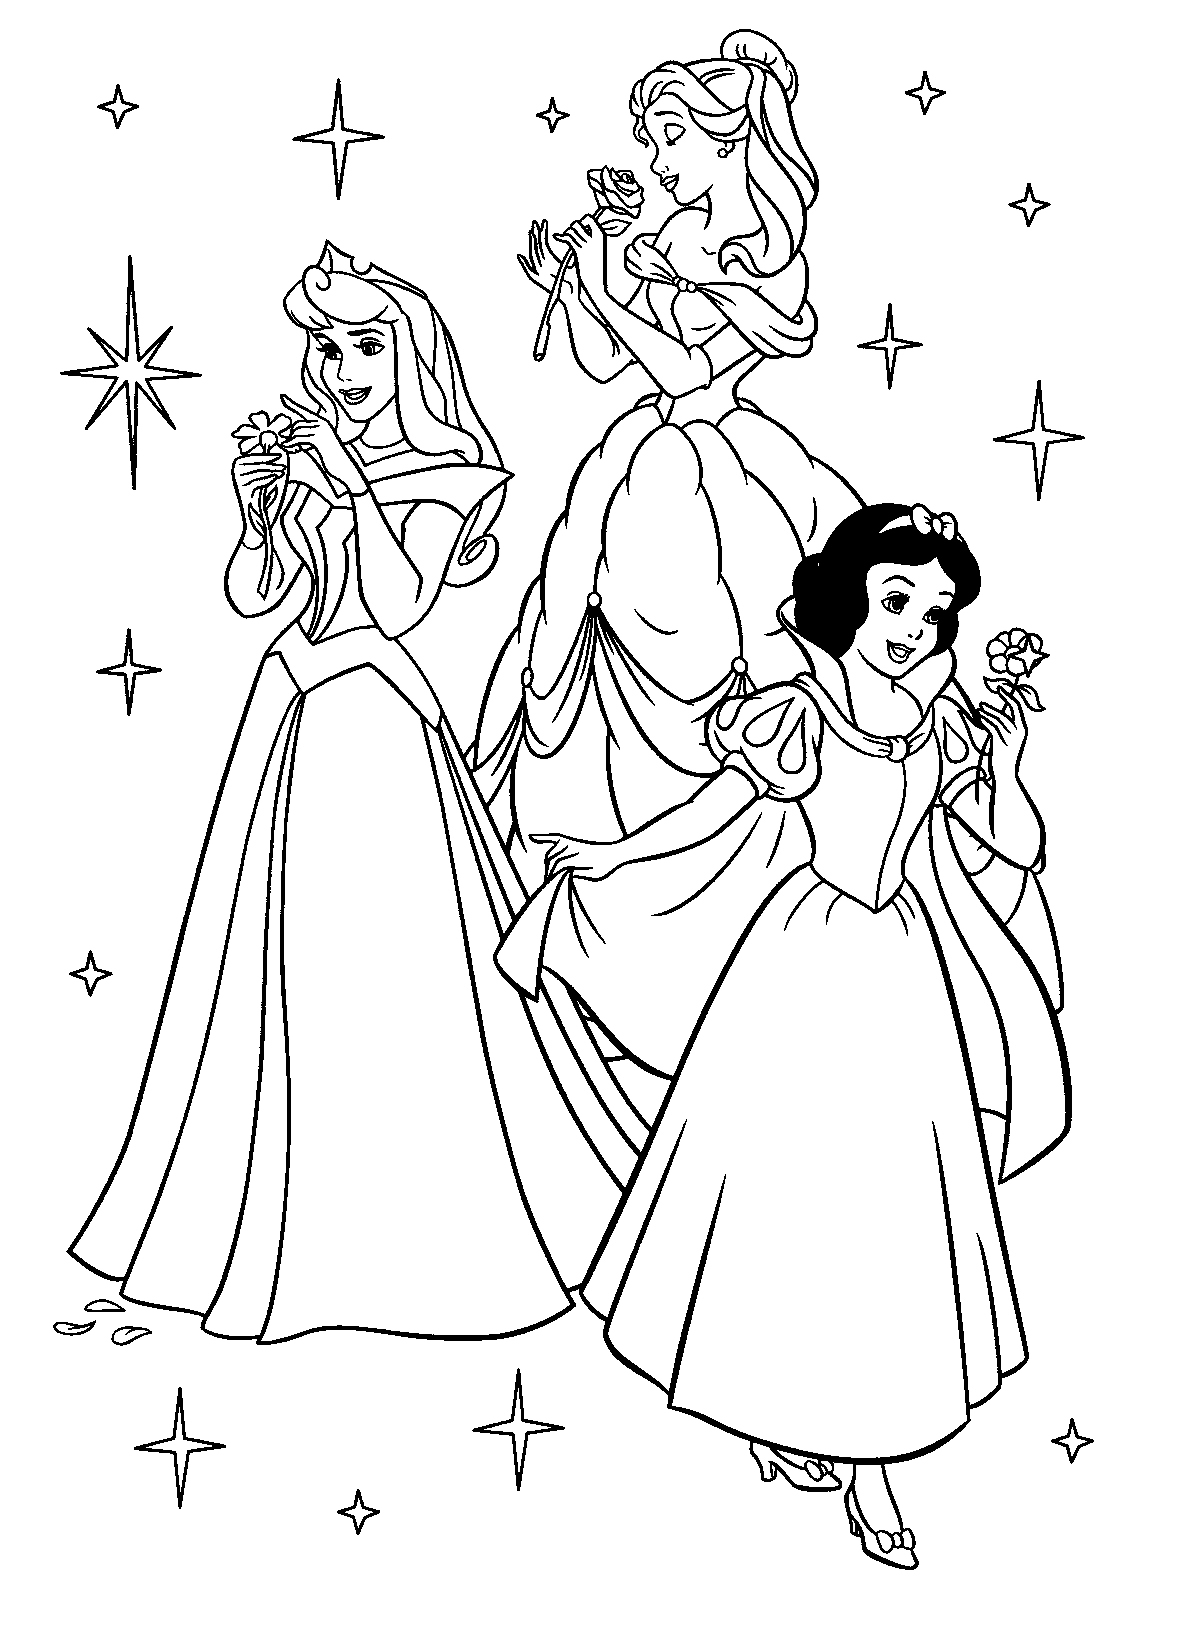 Disney Princesses Coloring Pages | Art & craft | Pinterest ...